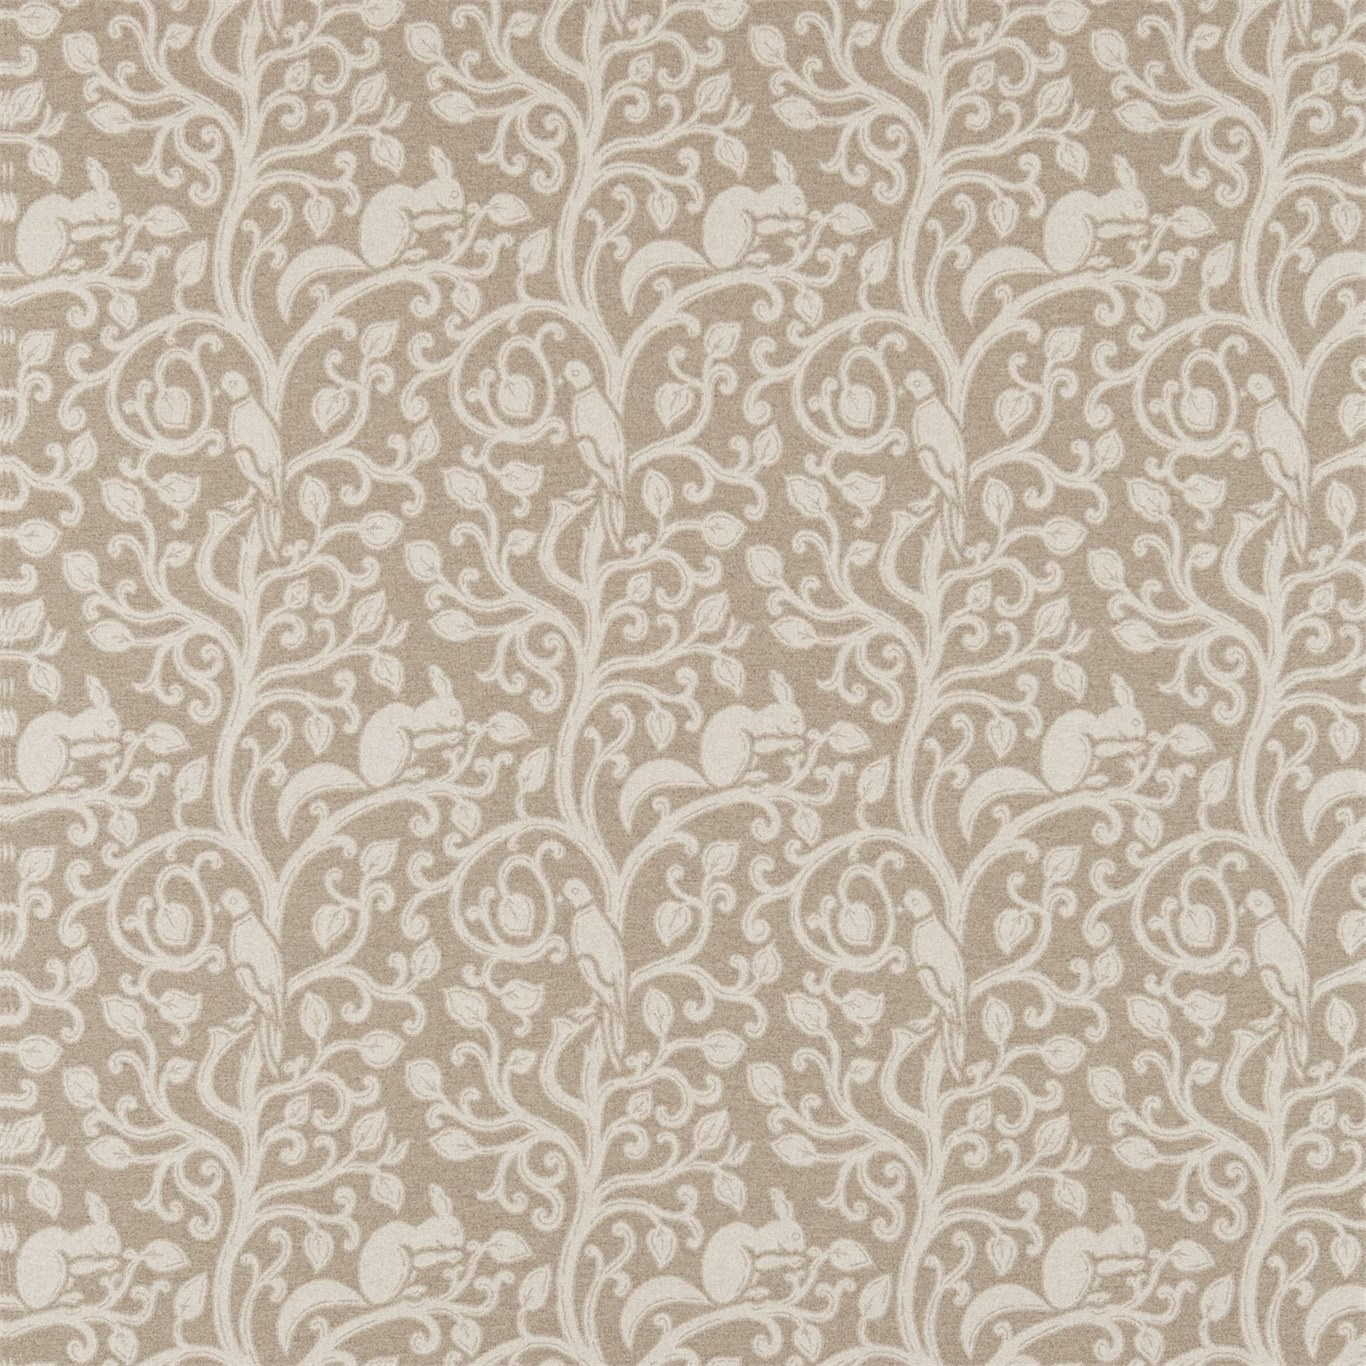 Image of Sanderson Squirrel & Dove Wool Linen Fabric 233265